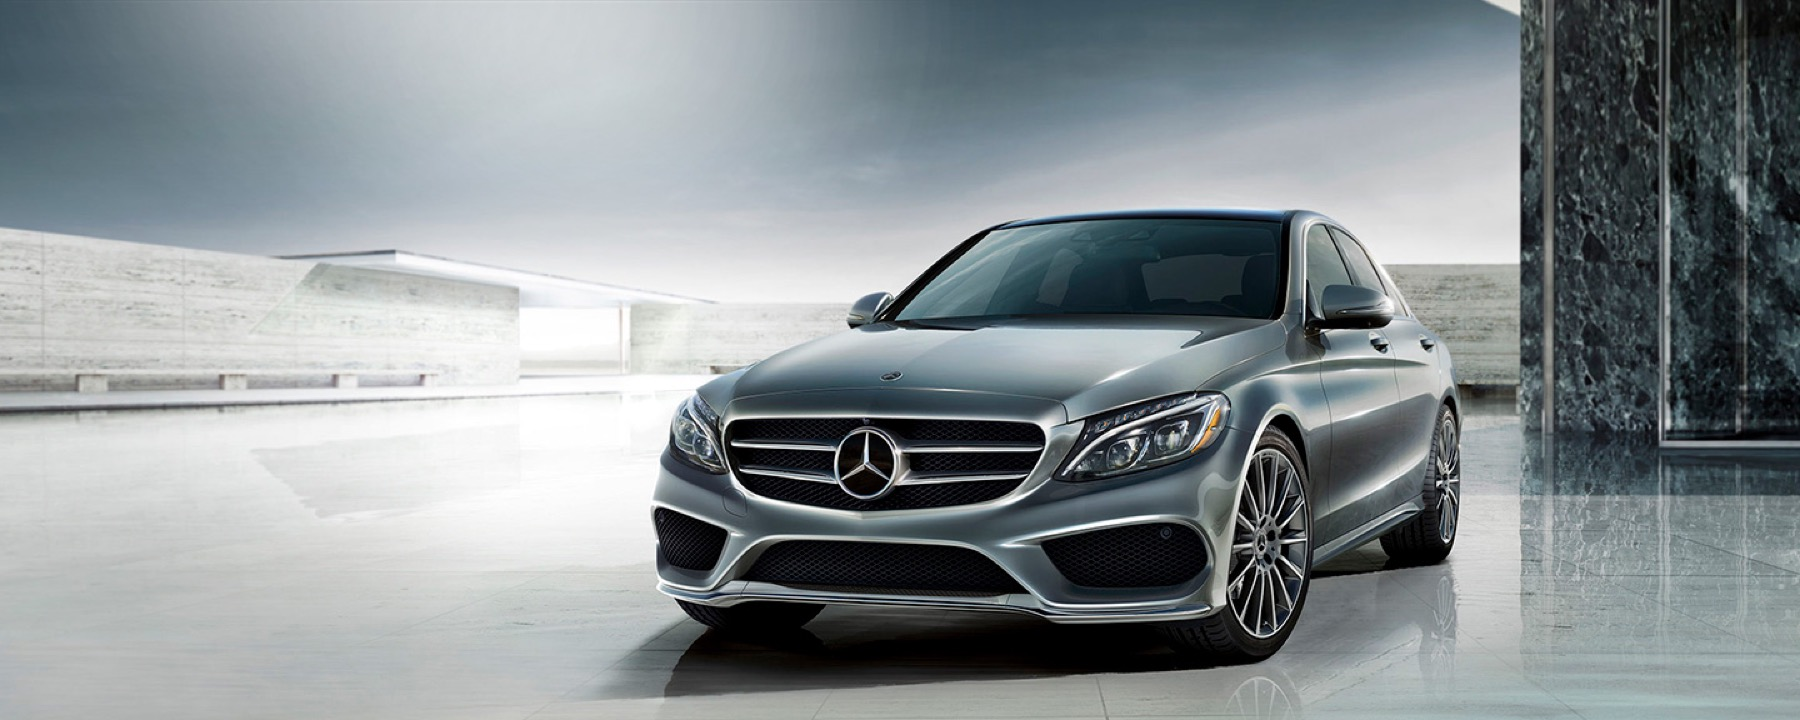 New Mercedes-Benz Luxury Vehicle Subscription Is Coming Soon - Baker ...